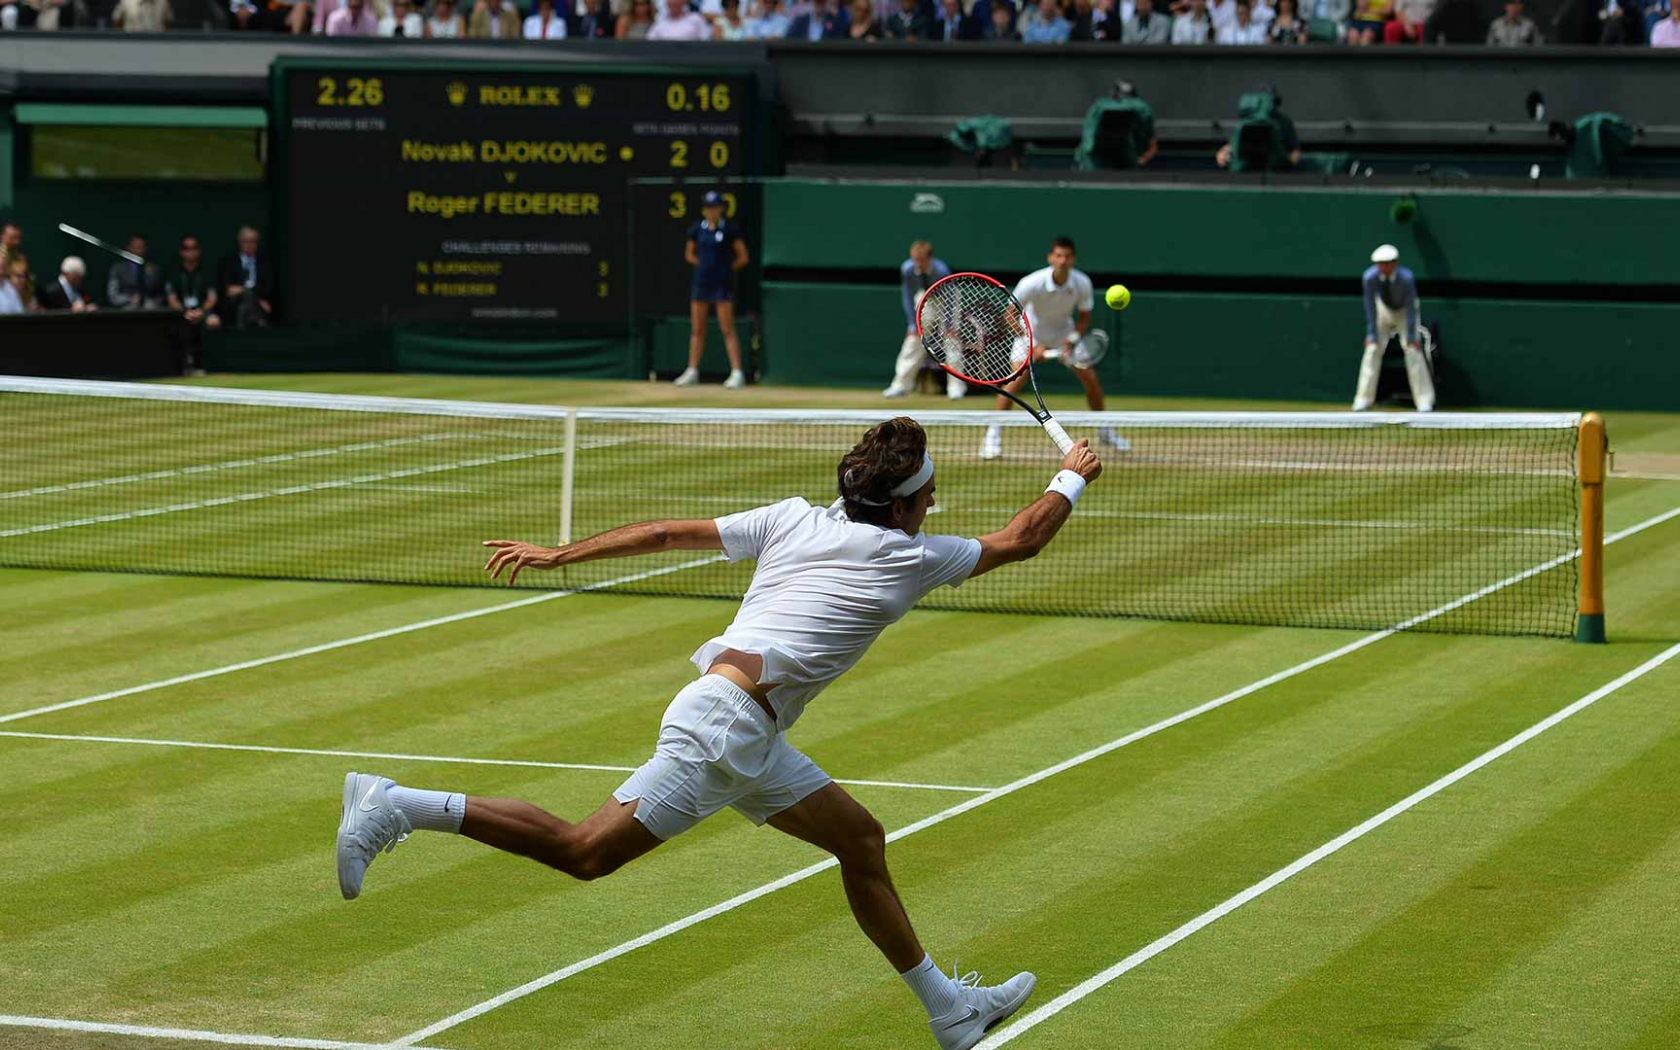 Free Download Quiz How Well Do You Know Wimbledon Really 1920x1080 For Your Desktop Mobile Tablet Explore 26 Novak Djokovic Wimbledon Wallpapers Novak Djokovic Wimbledon Wallpapers Novak Djokovic Wallpapers